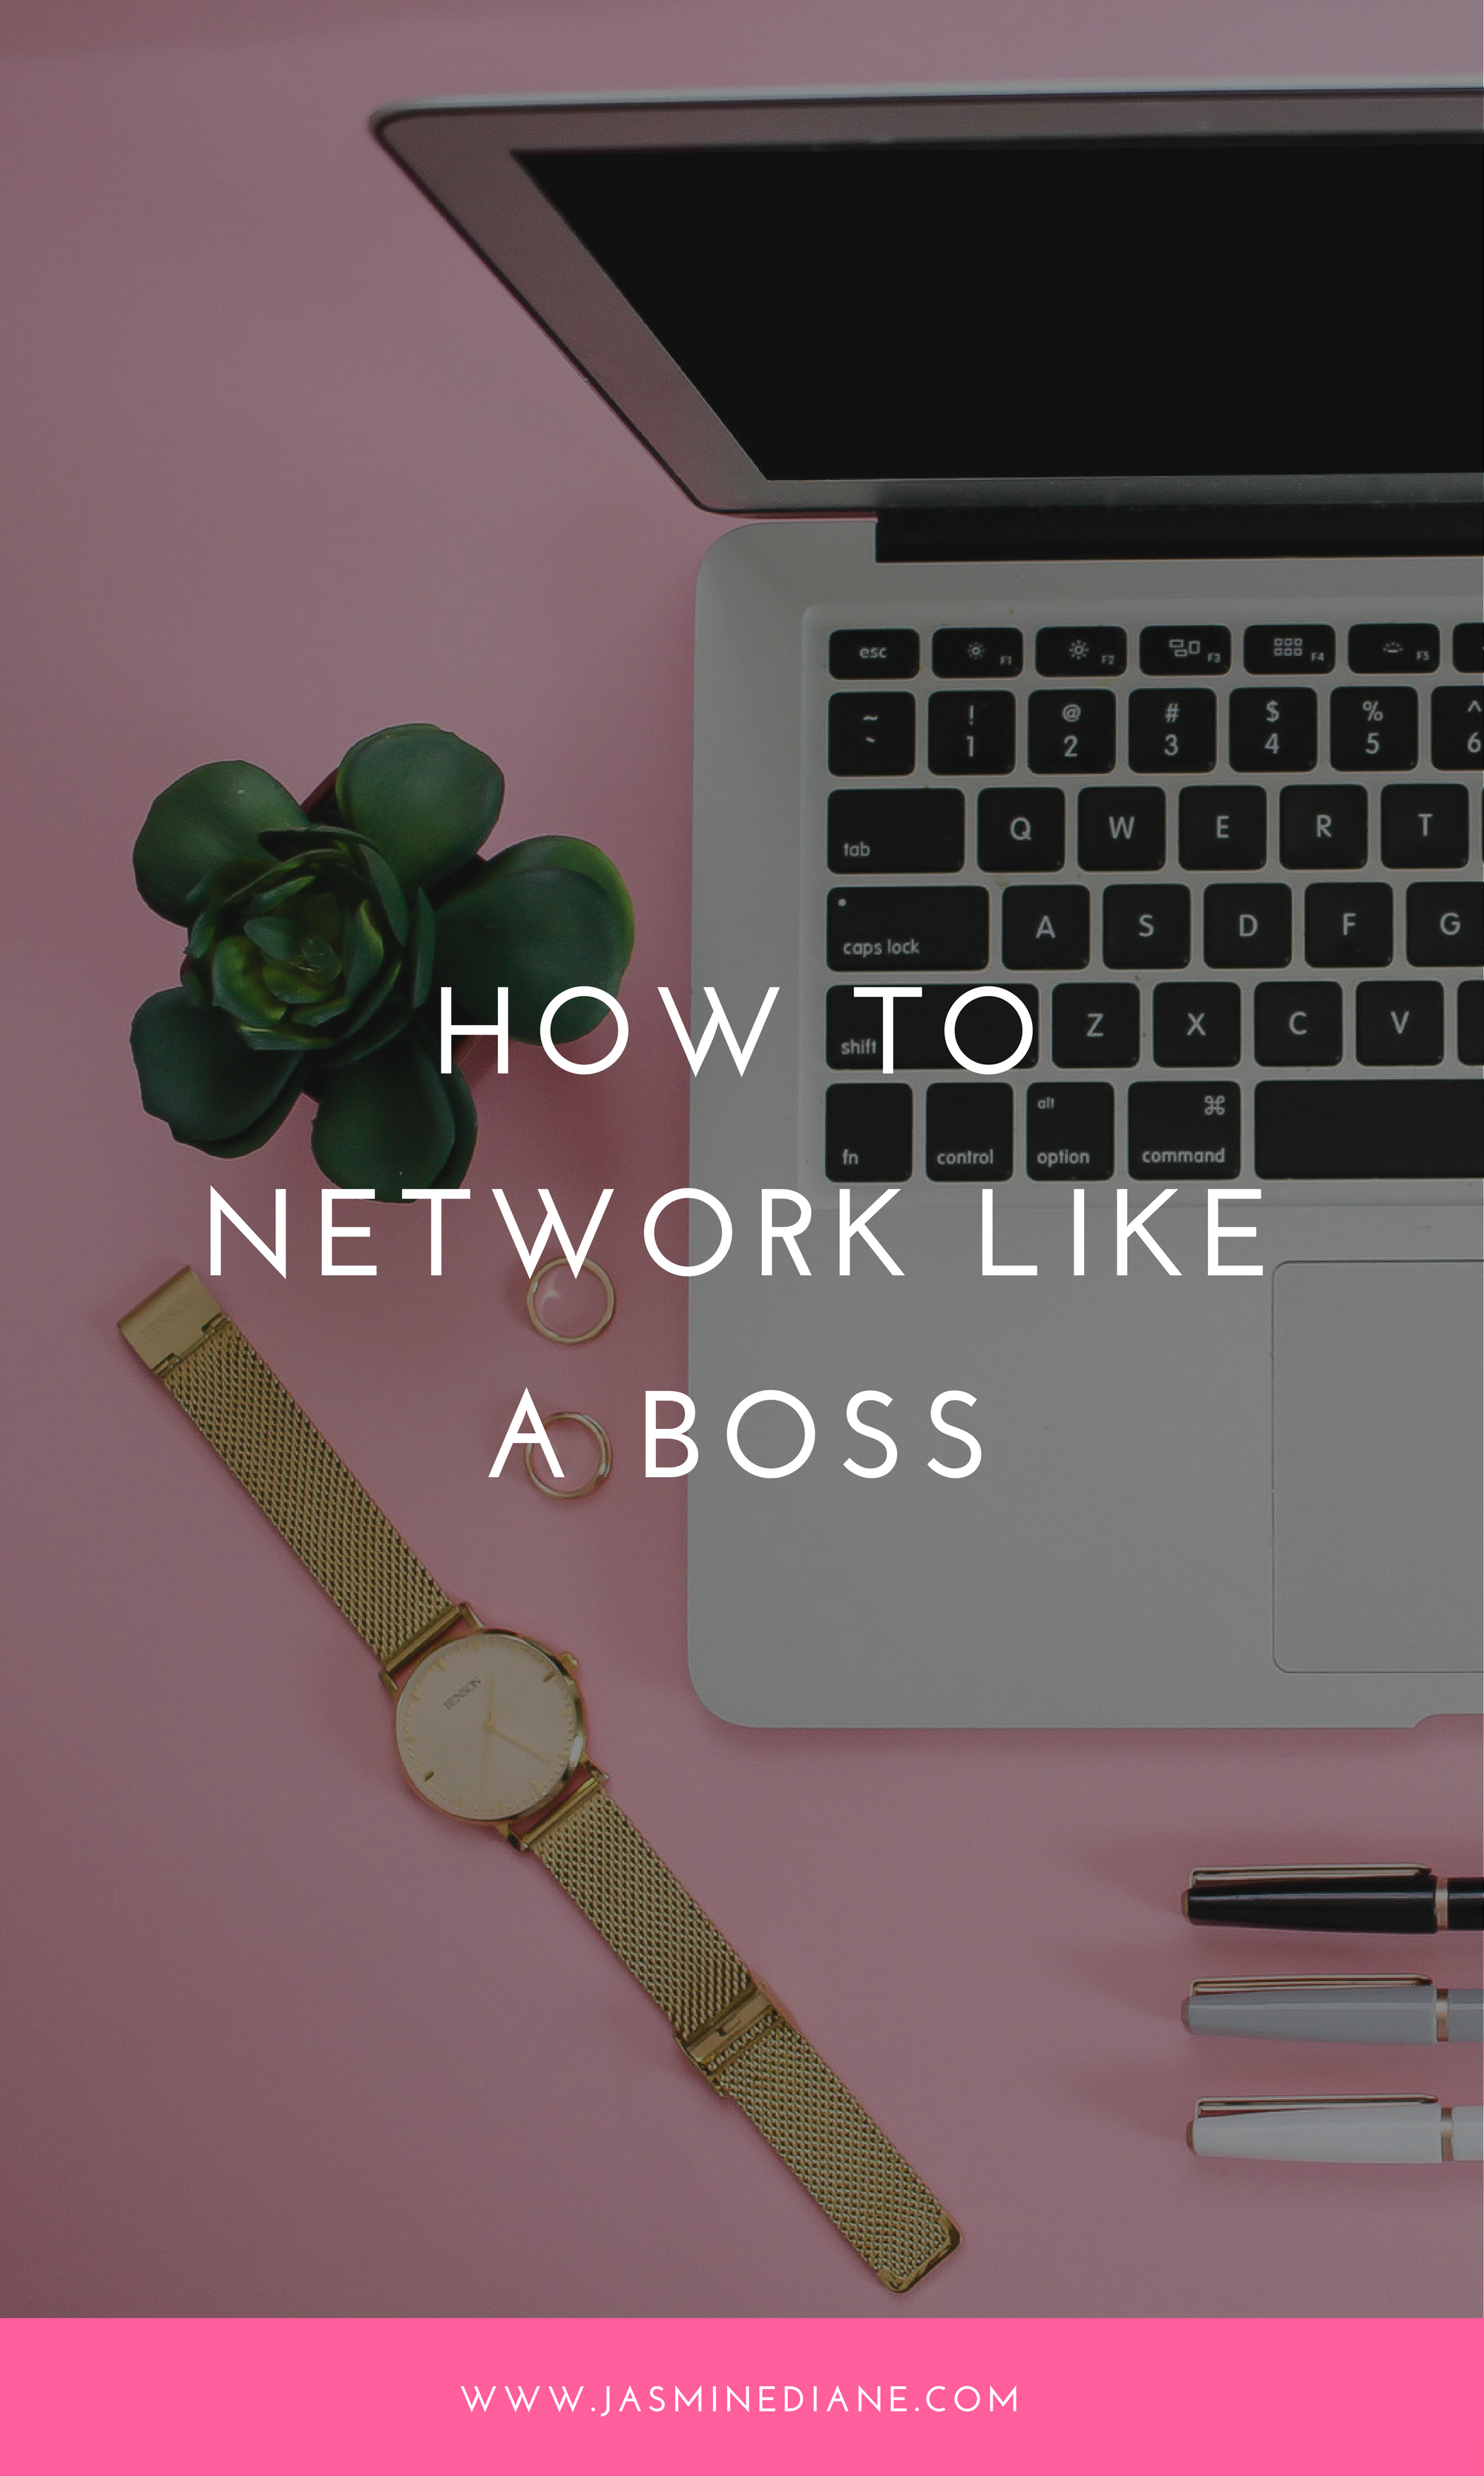 how do i network?